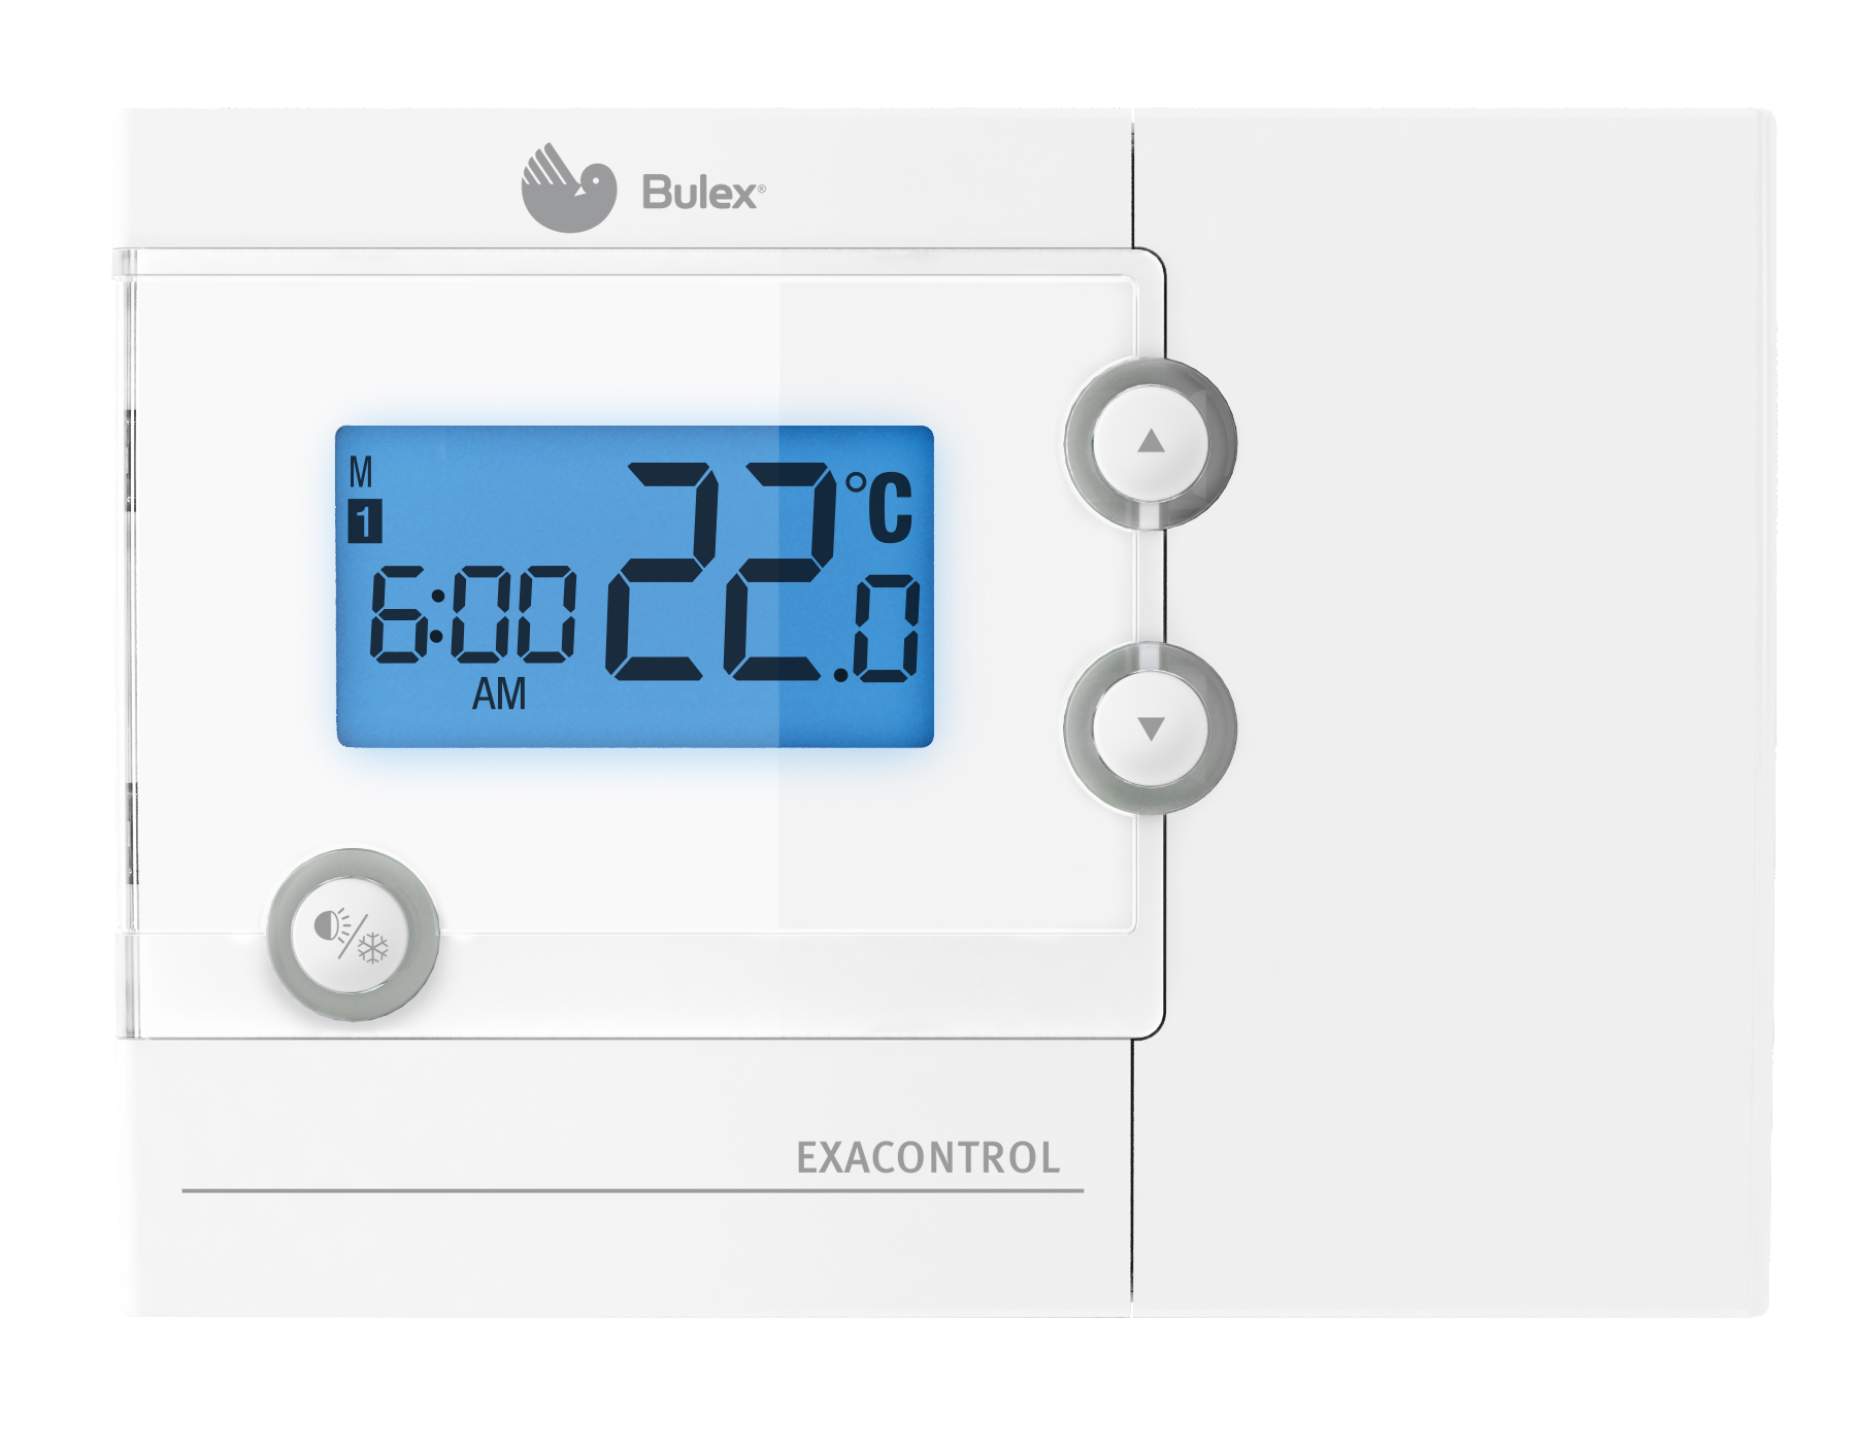 Thermostat ON/OFF Exacontrol 7 Bulex